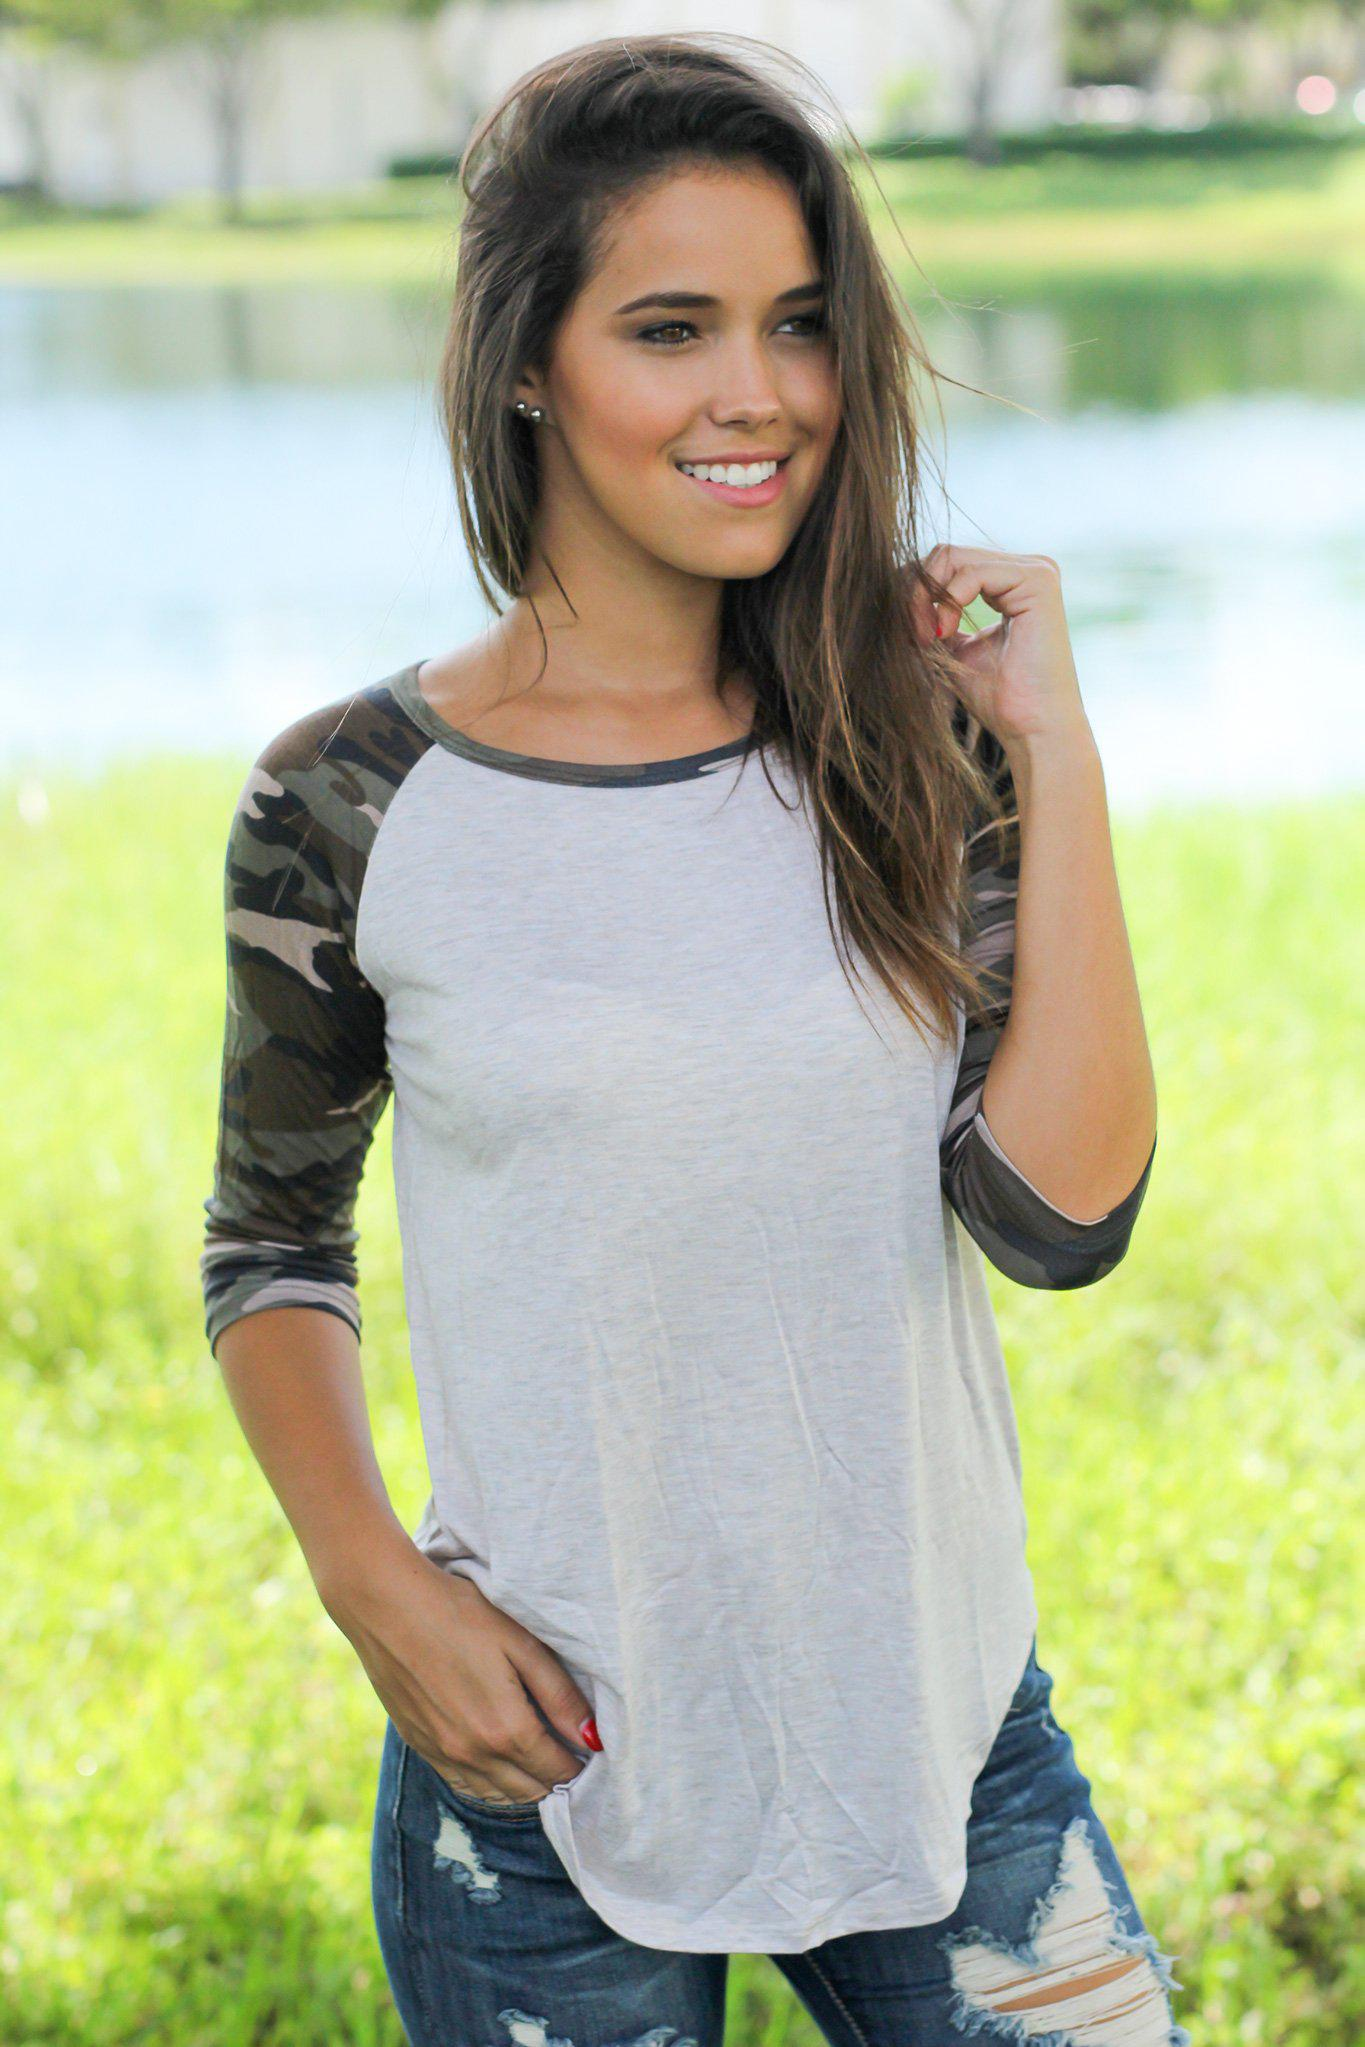 Oatmeal Top With Camo Sleeves